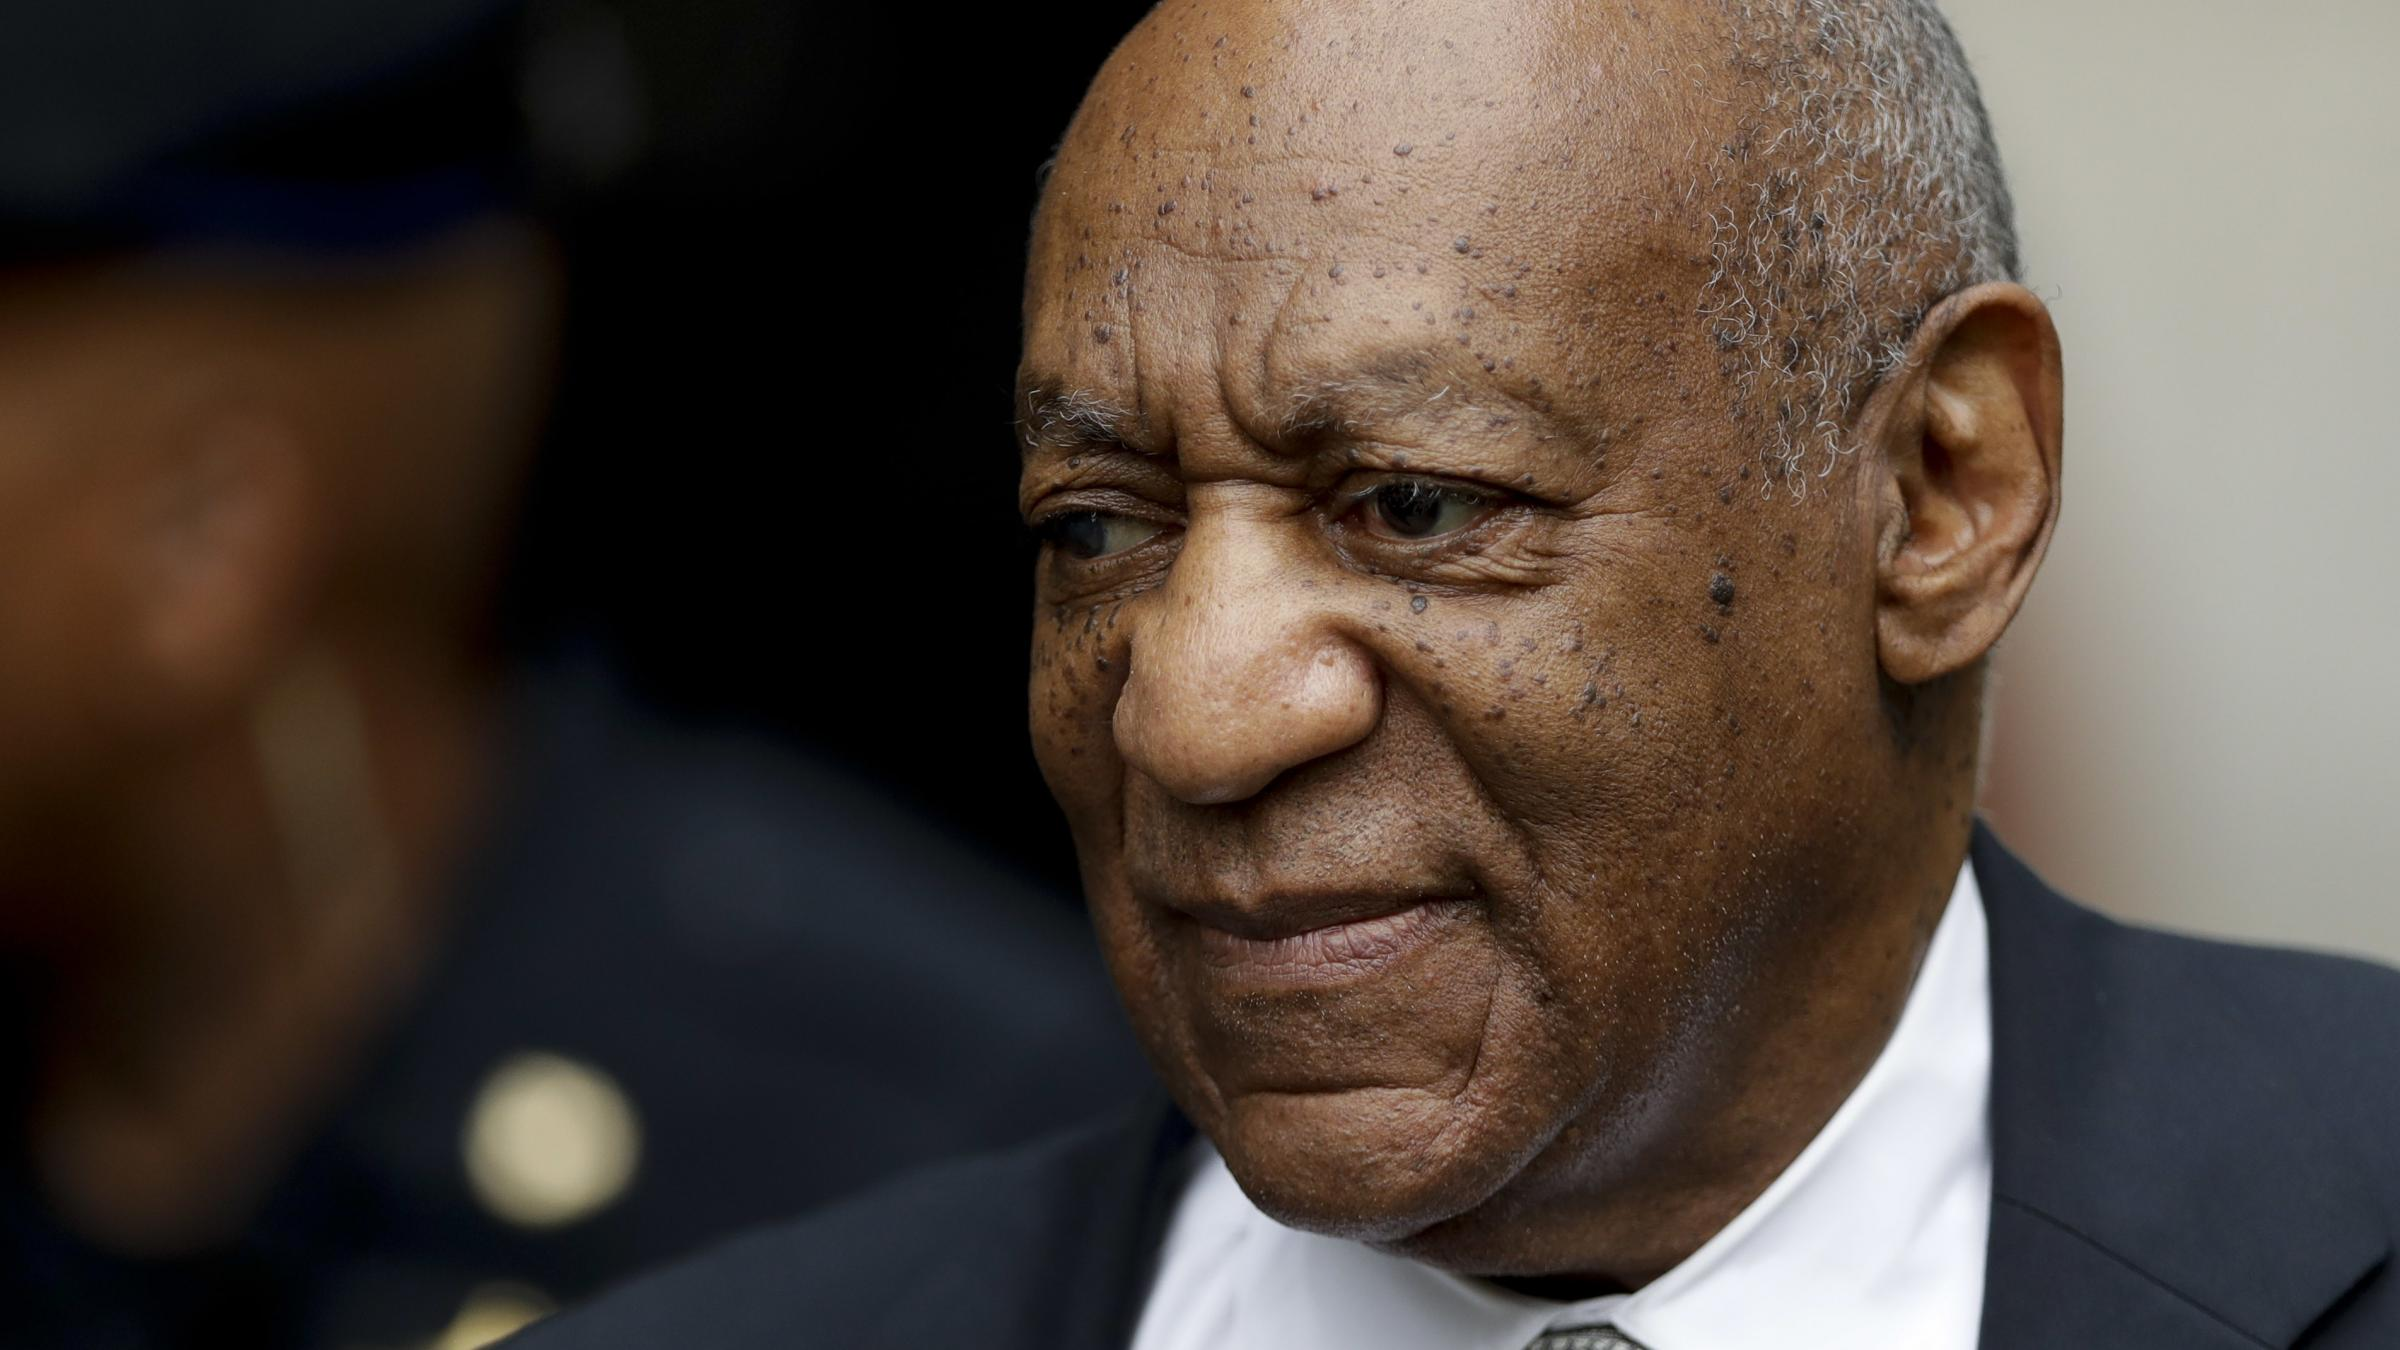 Gloria Allred to Bill Cosby: